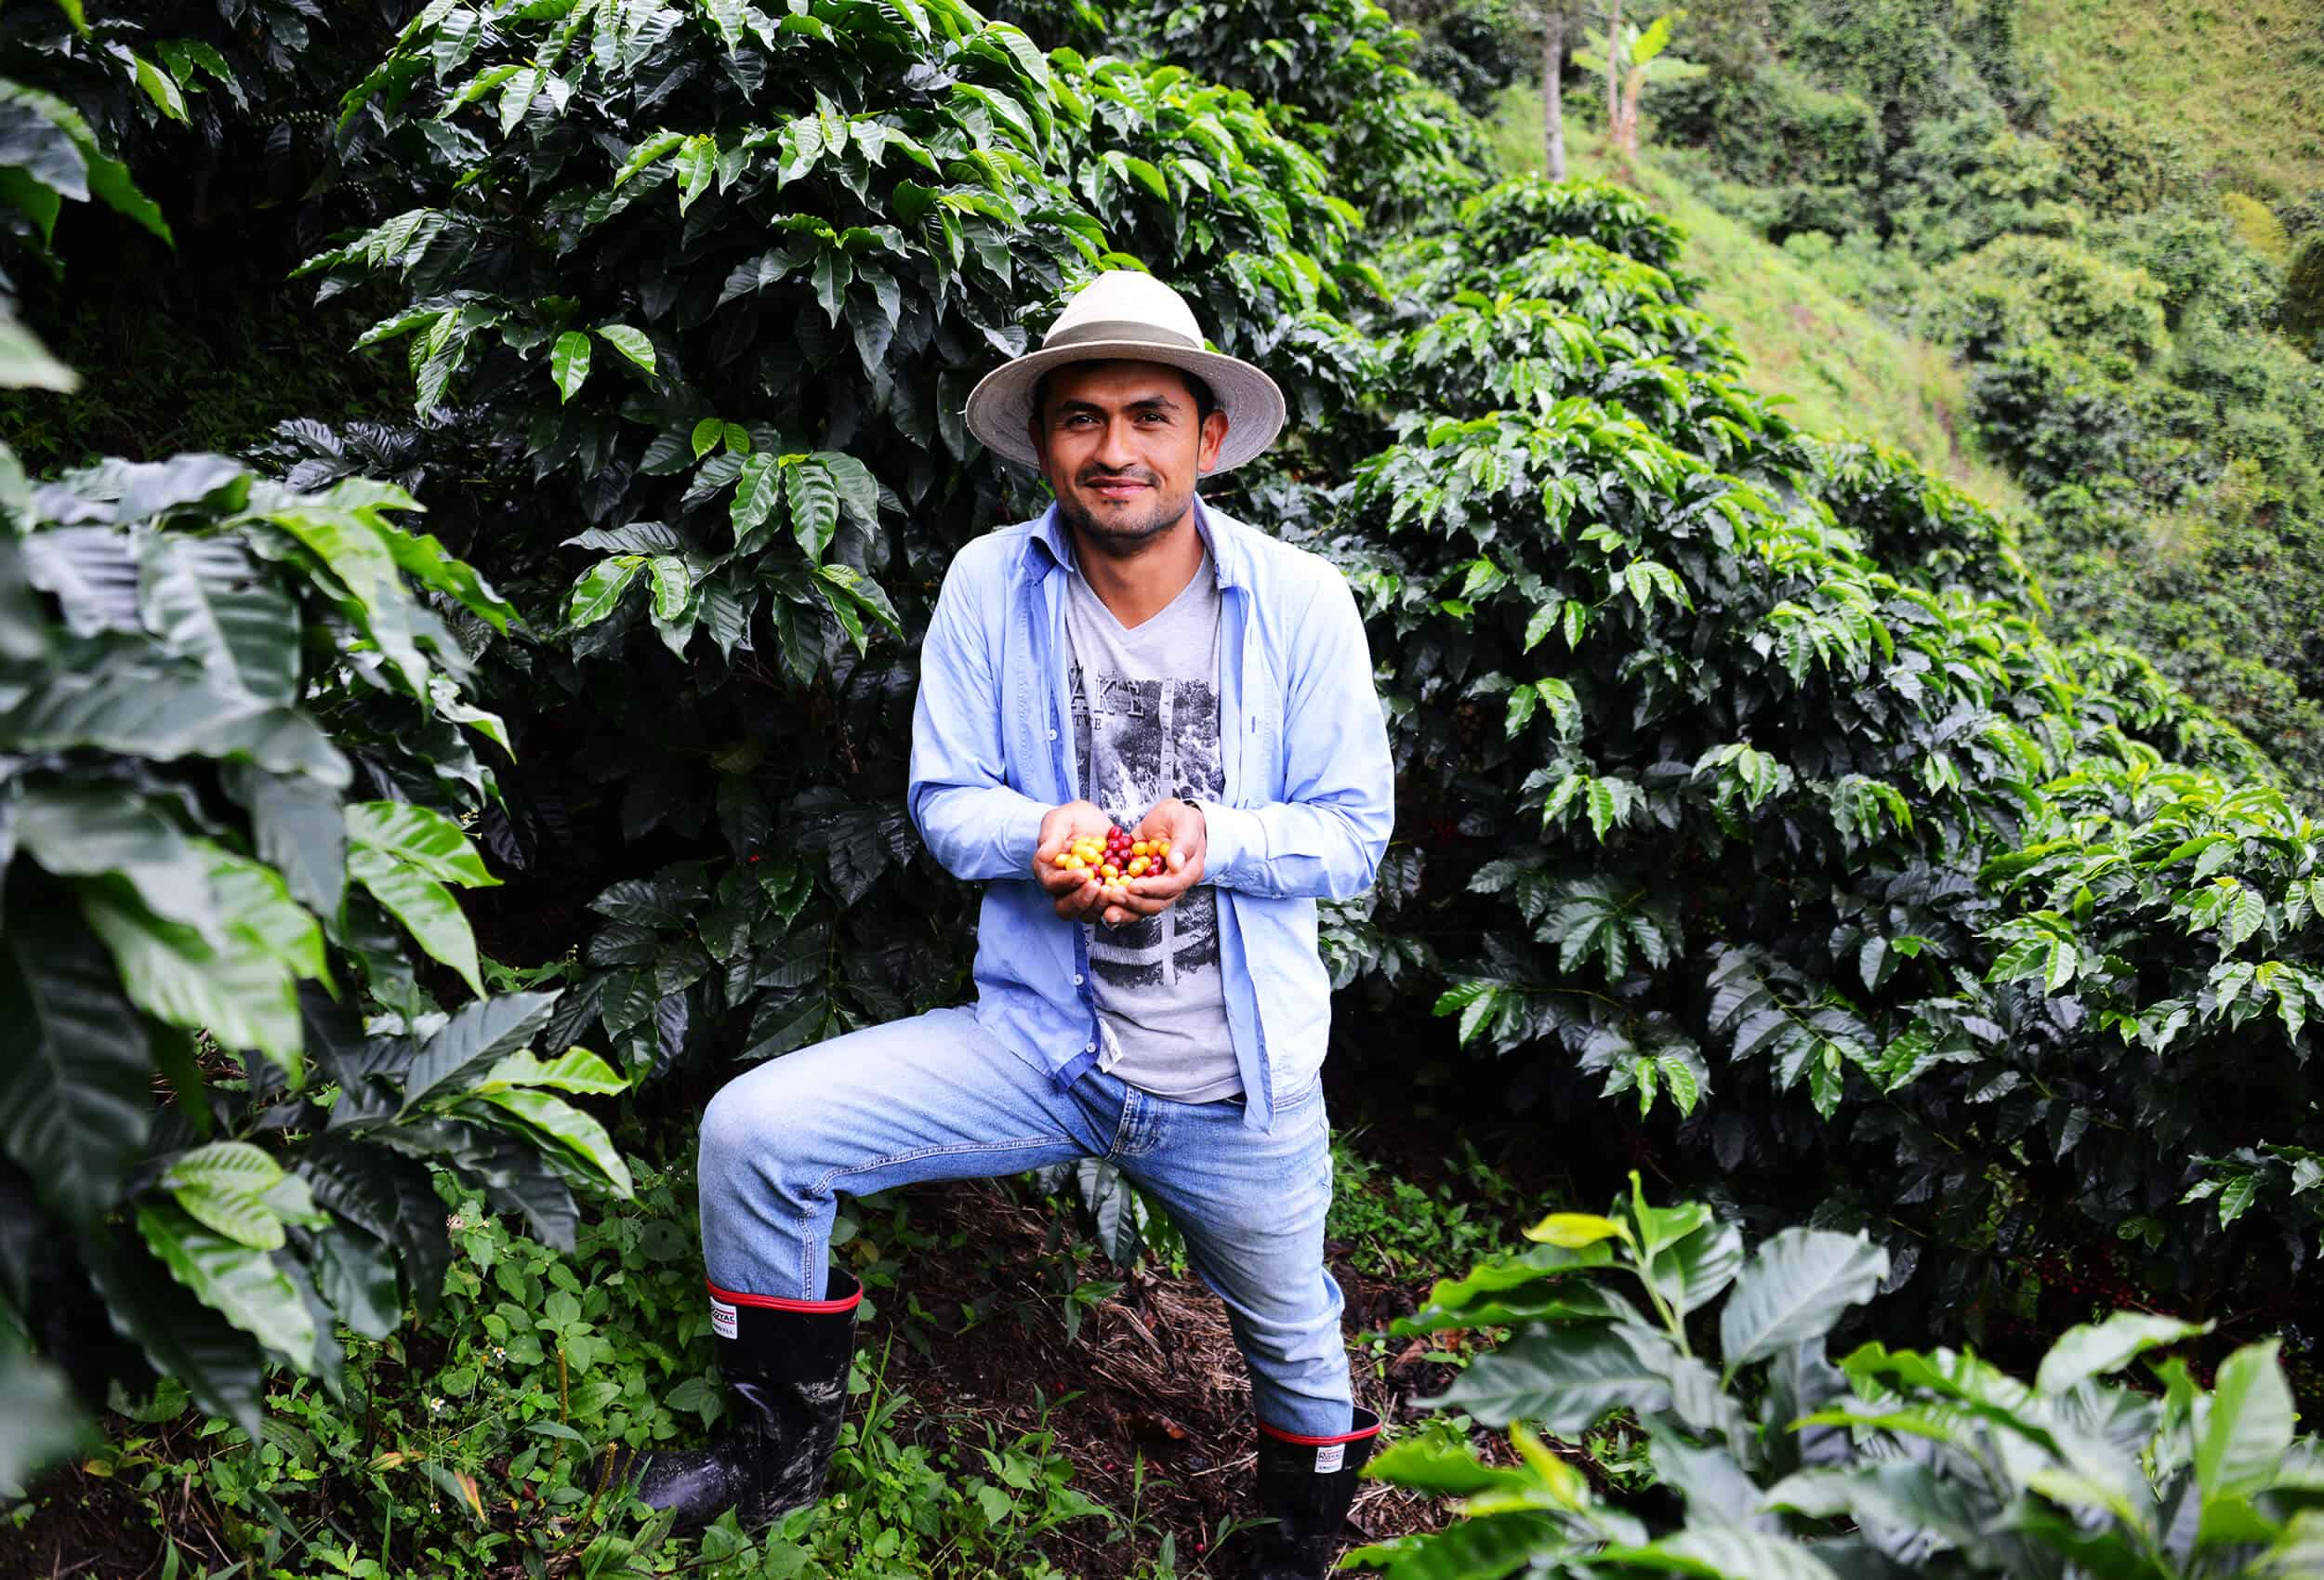 coffee farmer from colombia showing coffee cherries